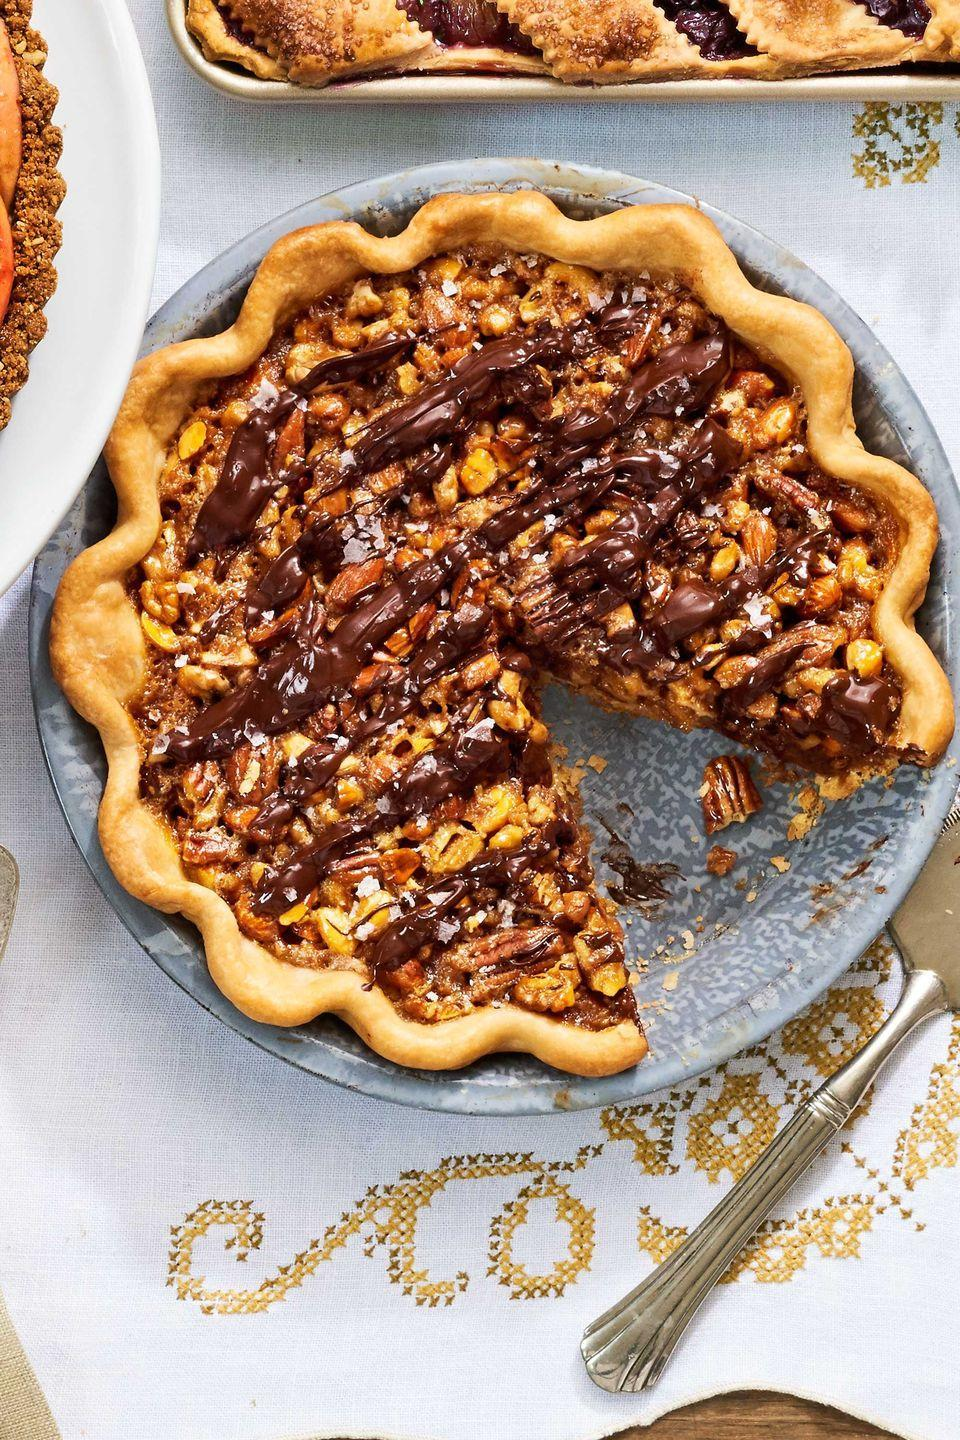 """<p>Dig into a chocolate-drizzled riff on classic pecan pie.</p><p><strong><a href=""""https://www.countryliving.com/food-drinks/recipes/a40044/maple-nut-pie-recipe/"""" rel=""""nofollow noopener"""" target=""""_blank"""" data-ylk=""""slk:Get the recipe"""" class=""""link rapid-noclick-resp"""">Get the recipe</a>.</strong> </p>"""